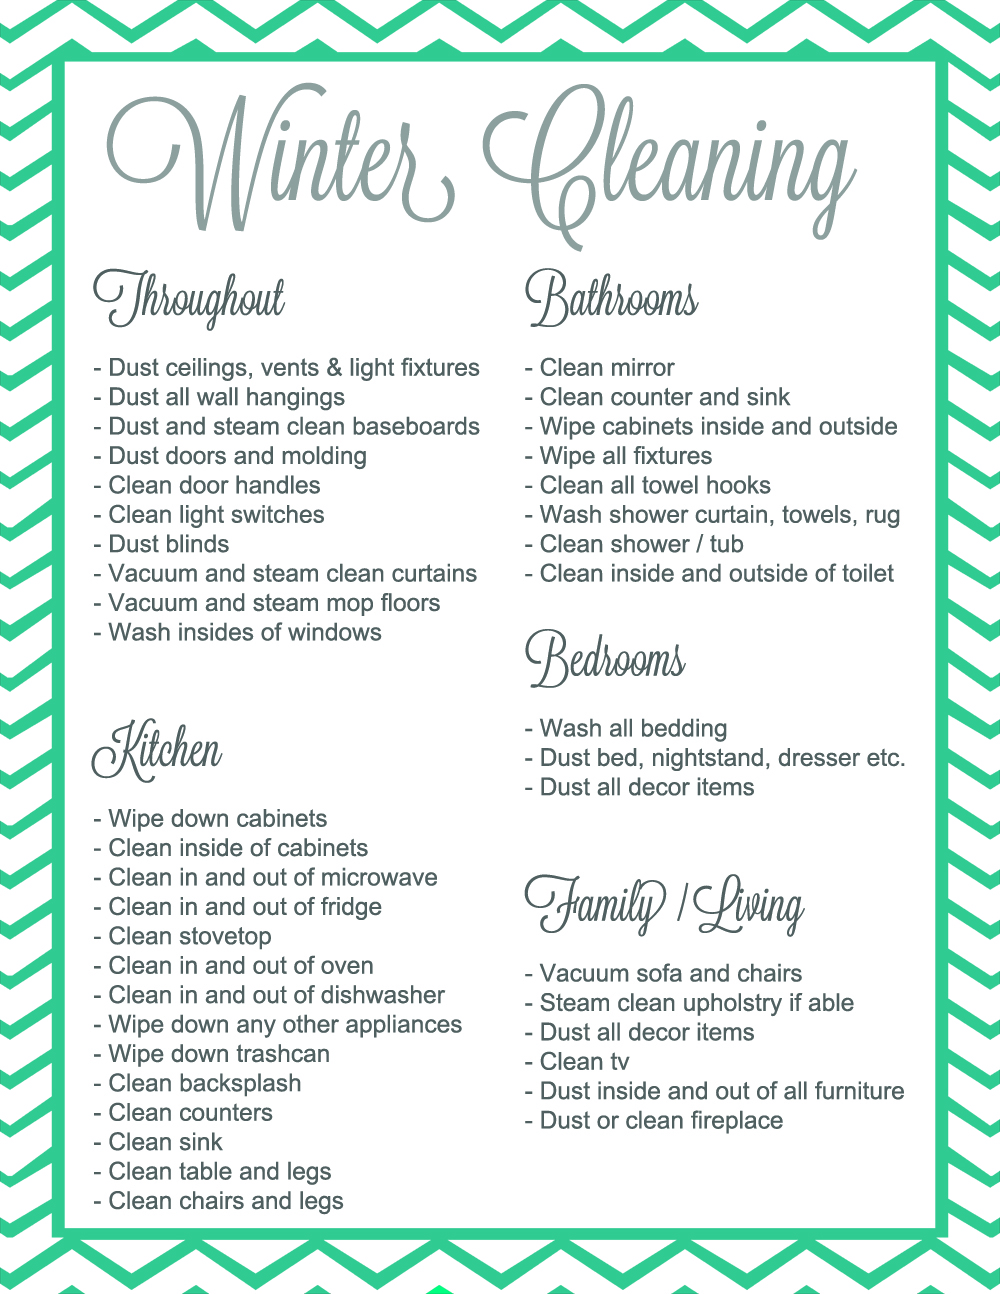 Winter Cleaning Checklist | Free printable checklist for deep cleaning!  This is perfect for spring or winter cleaning! | #cleaning #printable #free